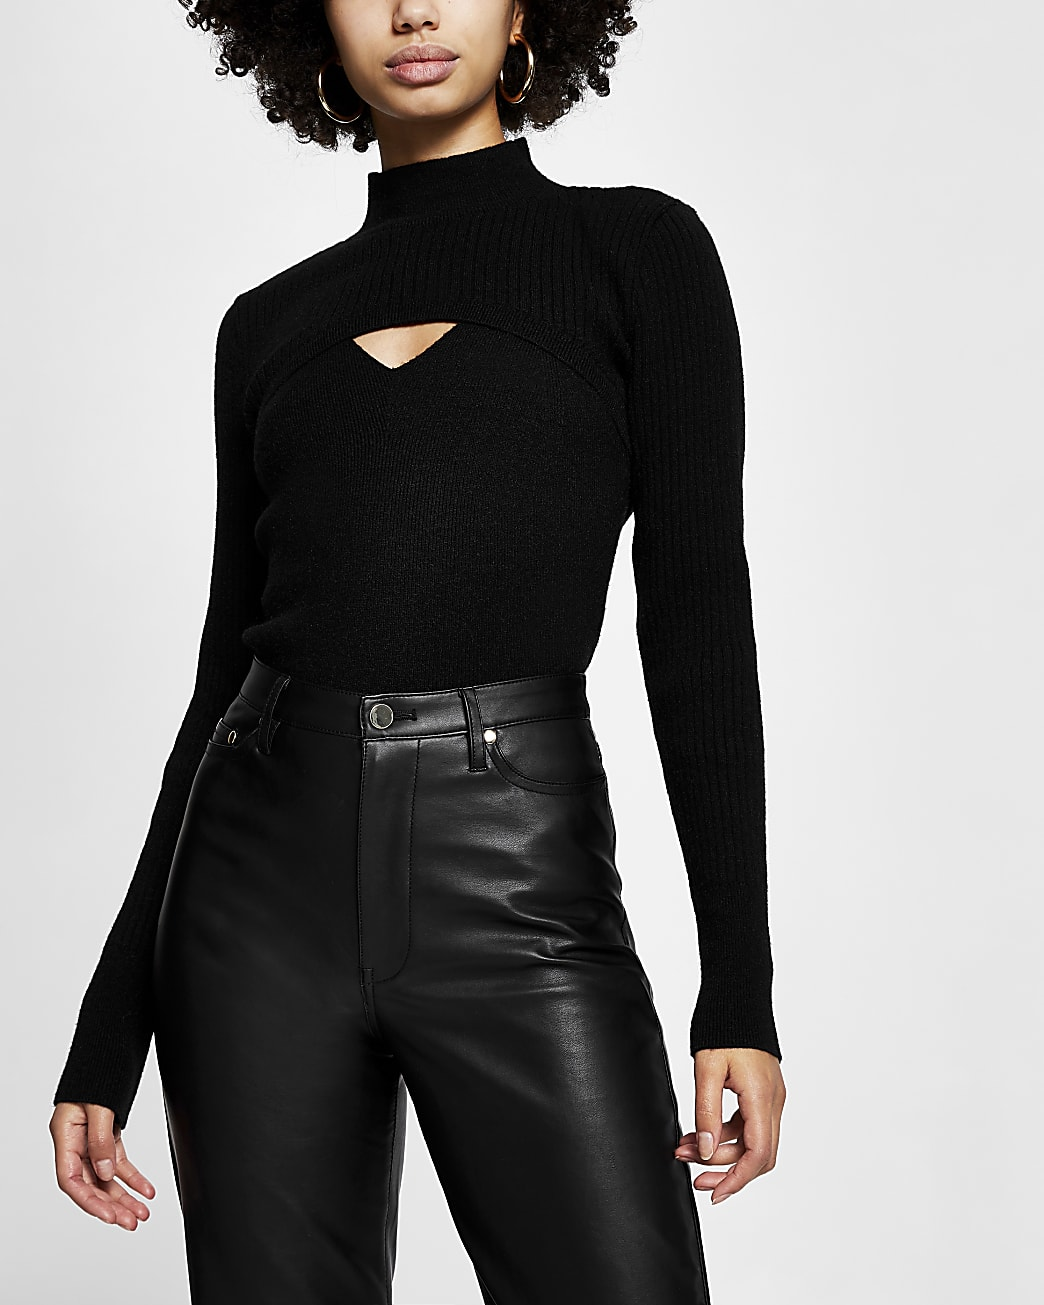 Black long sleeve 2 in 1 fitted knit set